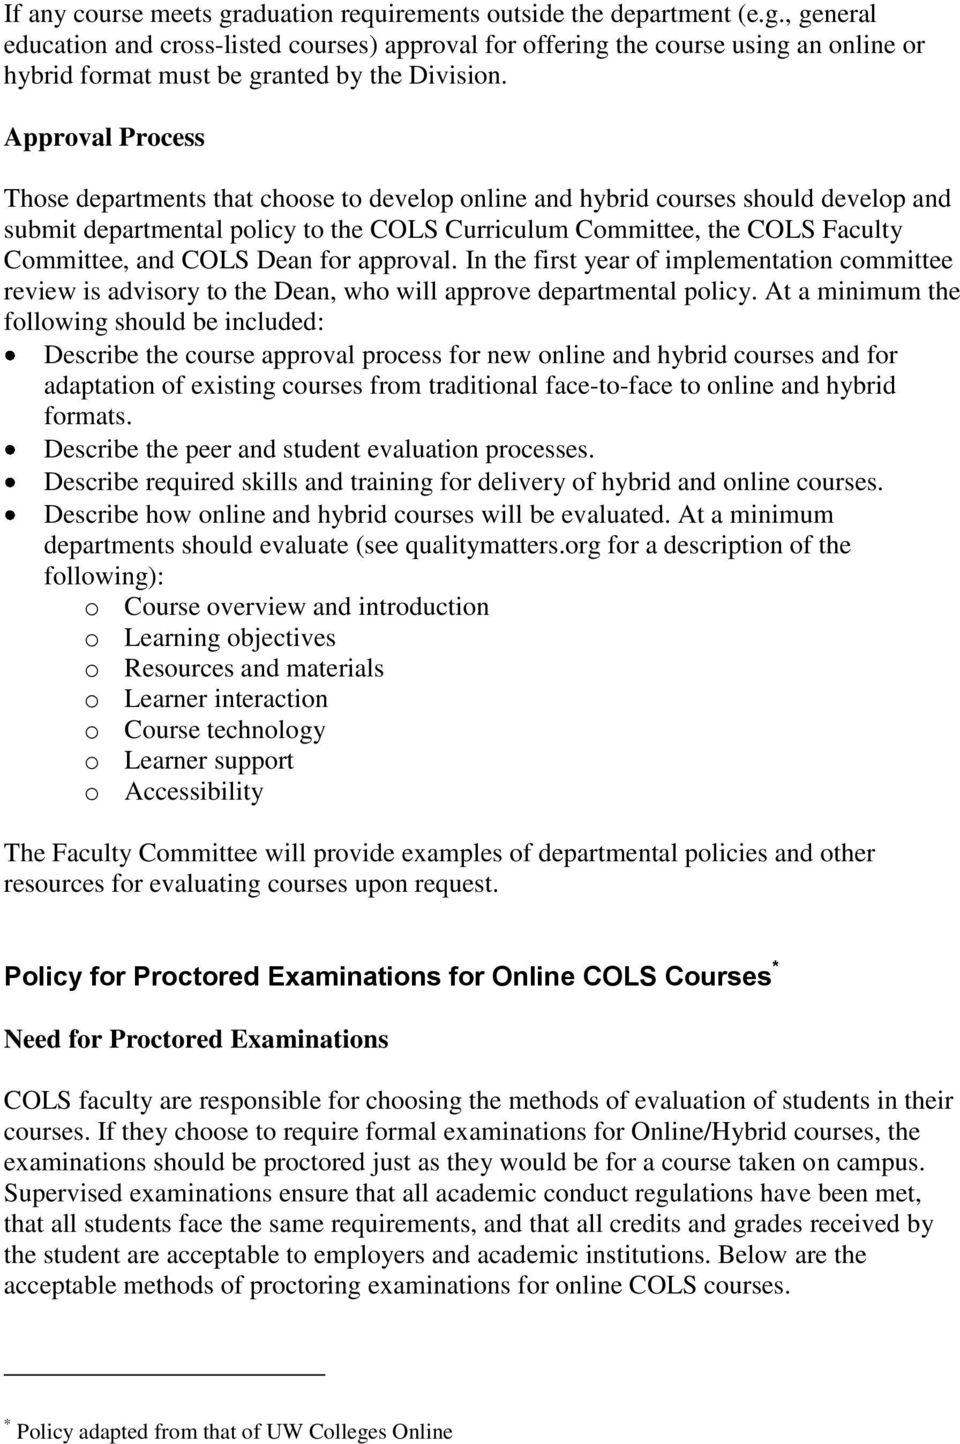 COLS Dean for approval. In the first year of implementation committee review is advisory to the Dean, who will approve departmental policy.